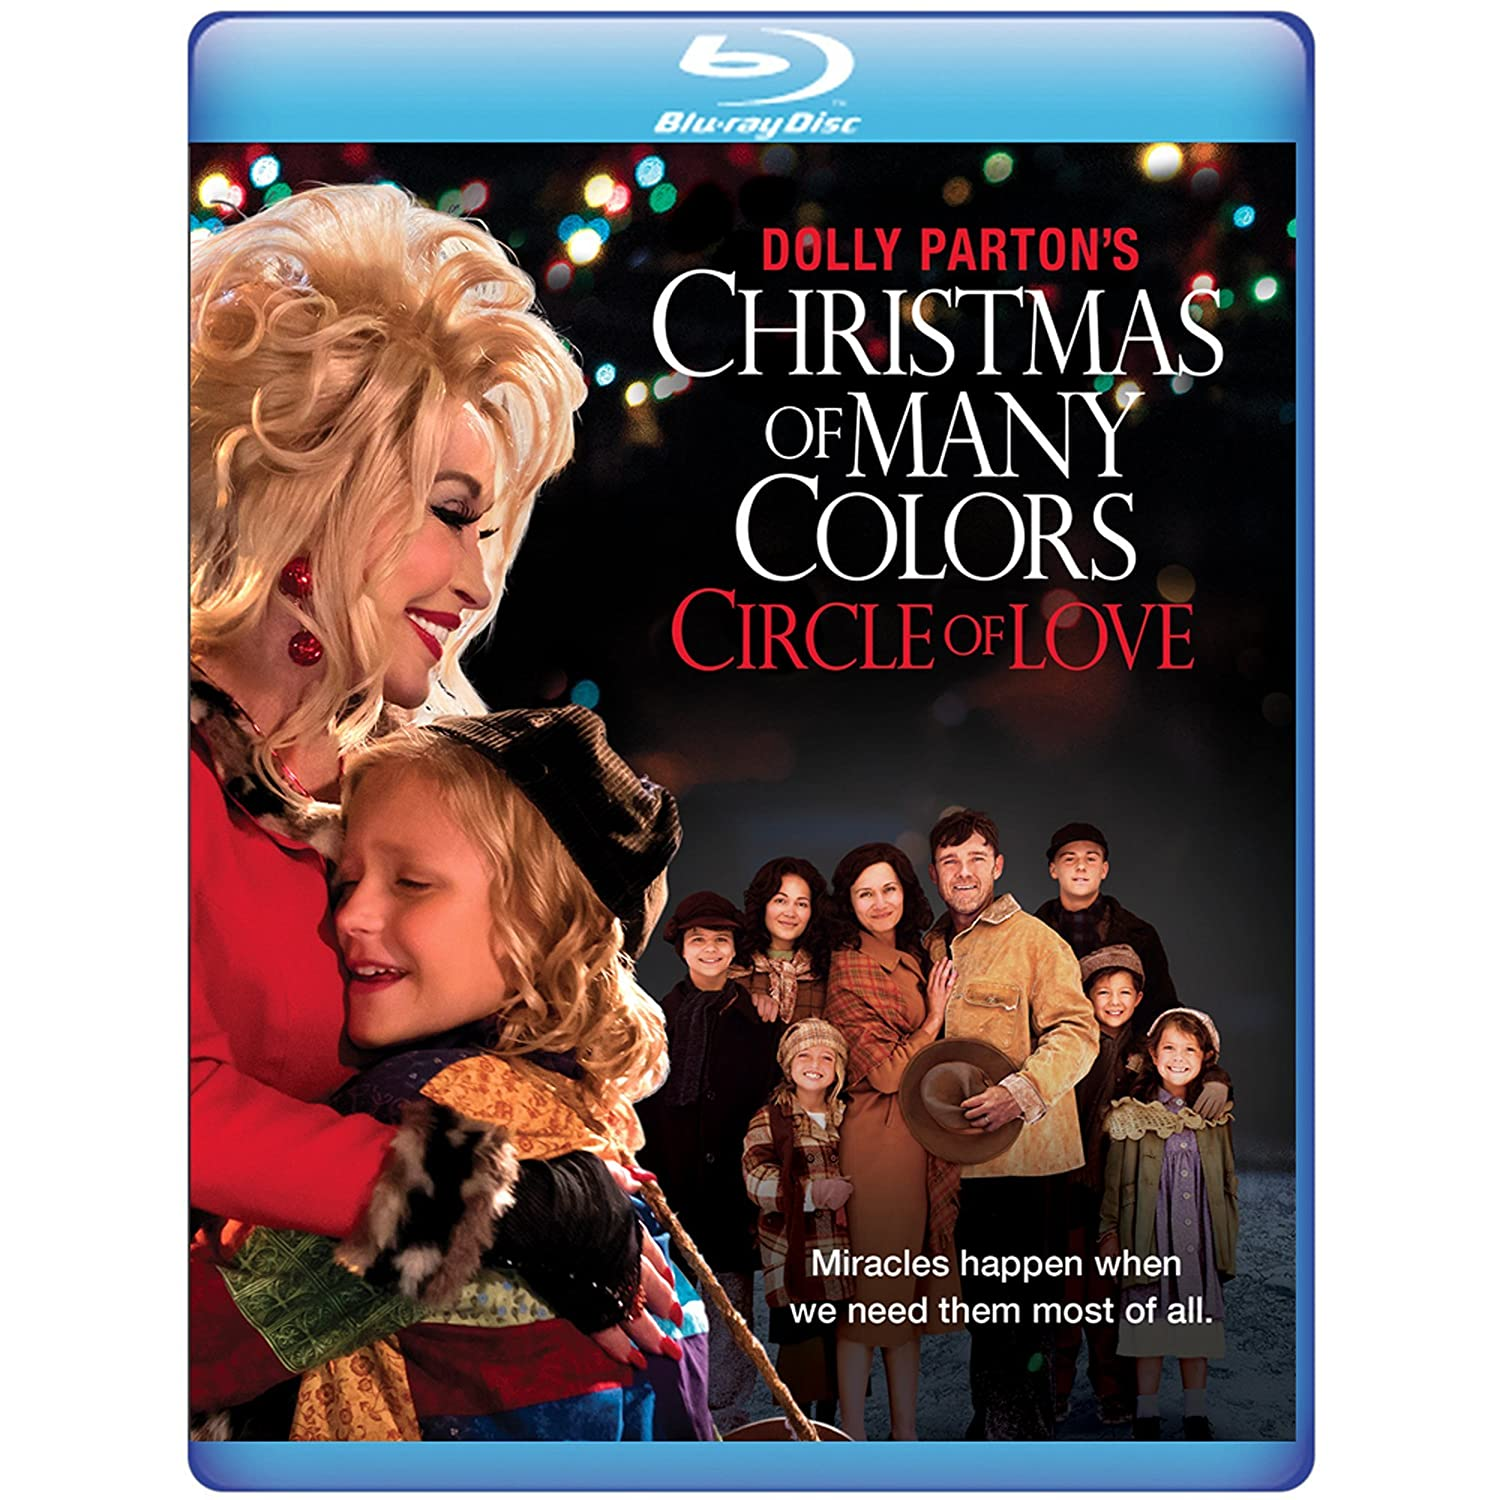 amazoncom dolly partons christmas of many colors circle of love blu ray dolly parton jennifer nettles ricky schroder movies tv - Dolly Parton Coat Of Many Colors Book